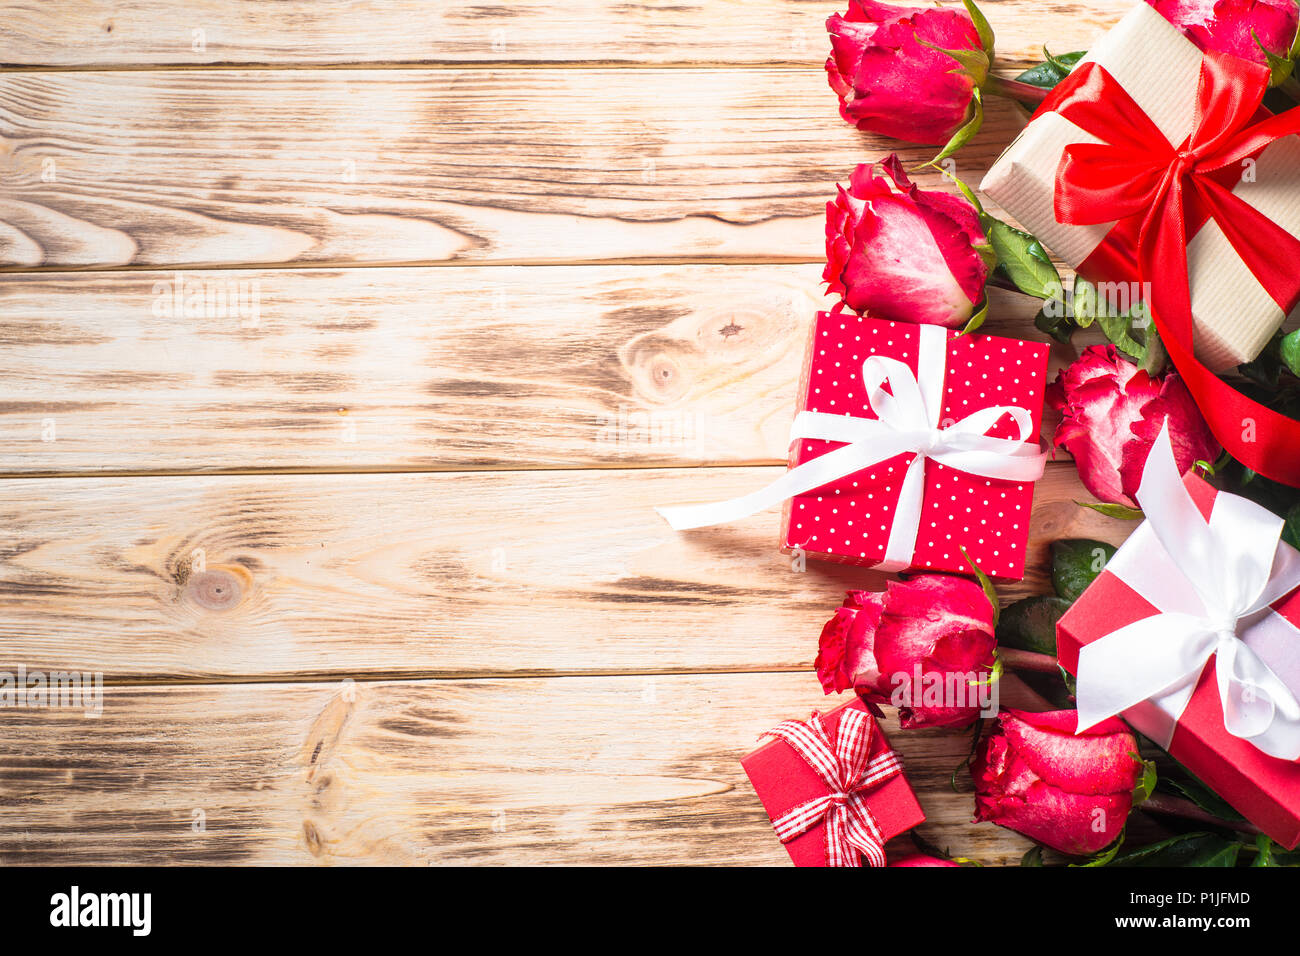 Red rose flower and present box on wooden table. Top view with copy space. Holiday background. - Stock Image